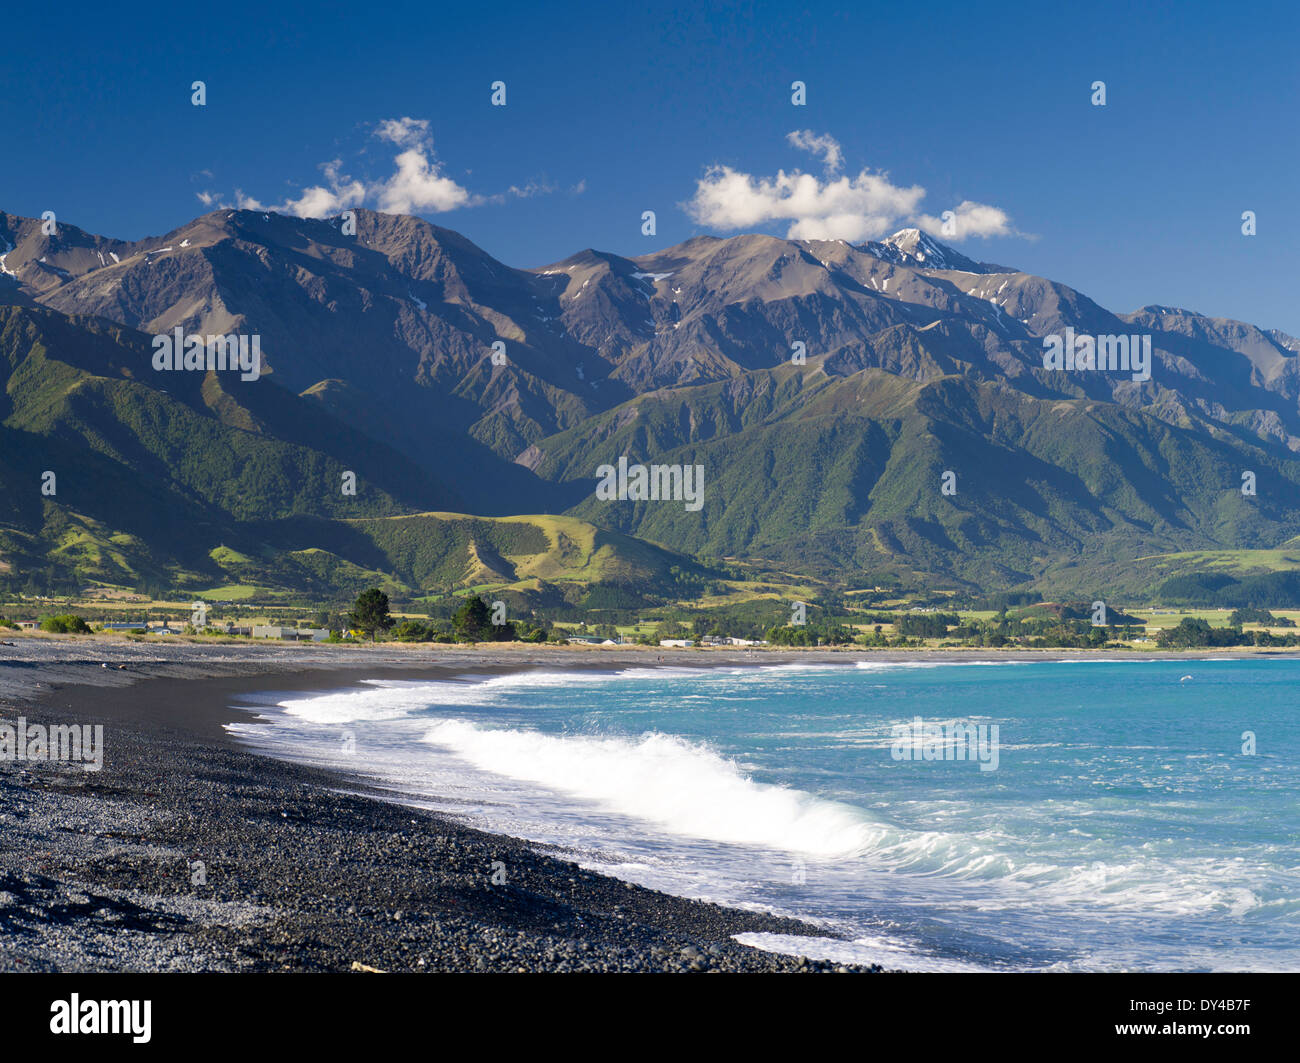 beautiful view of the beach at kaikoura canterbury new zealand